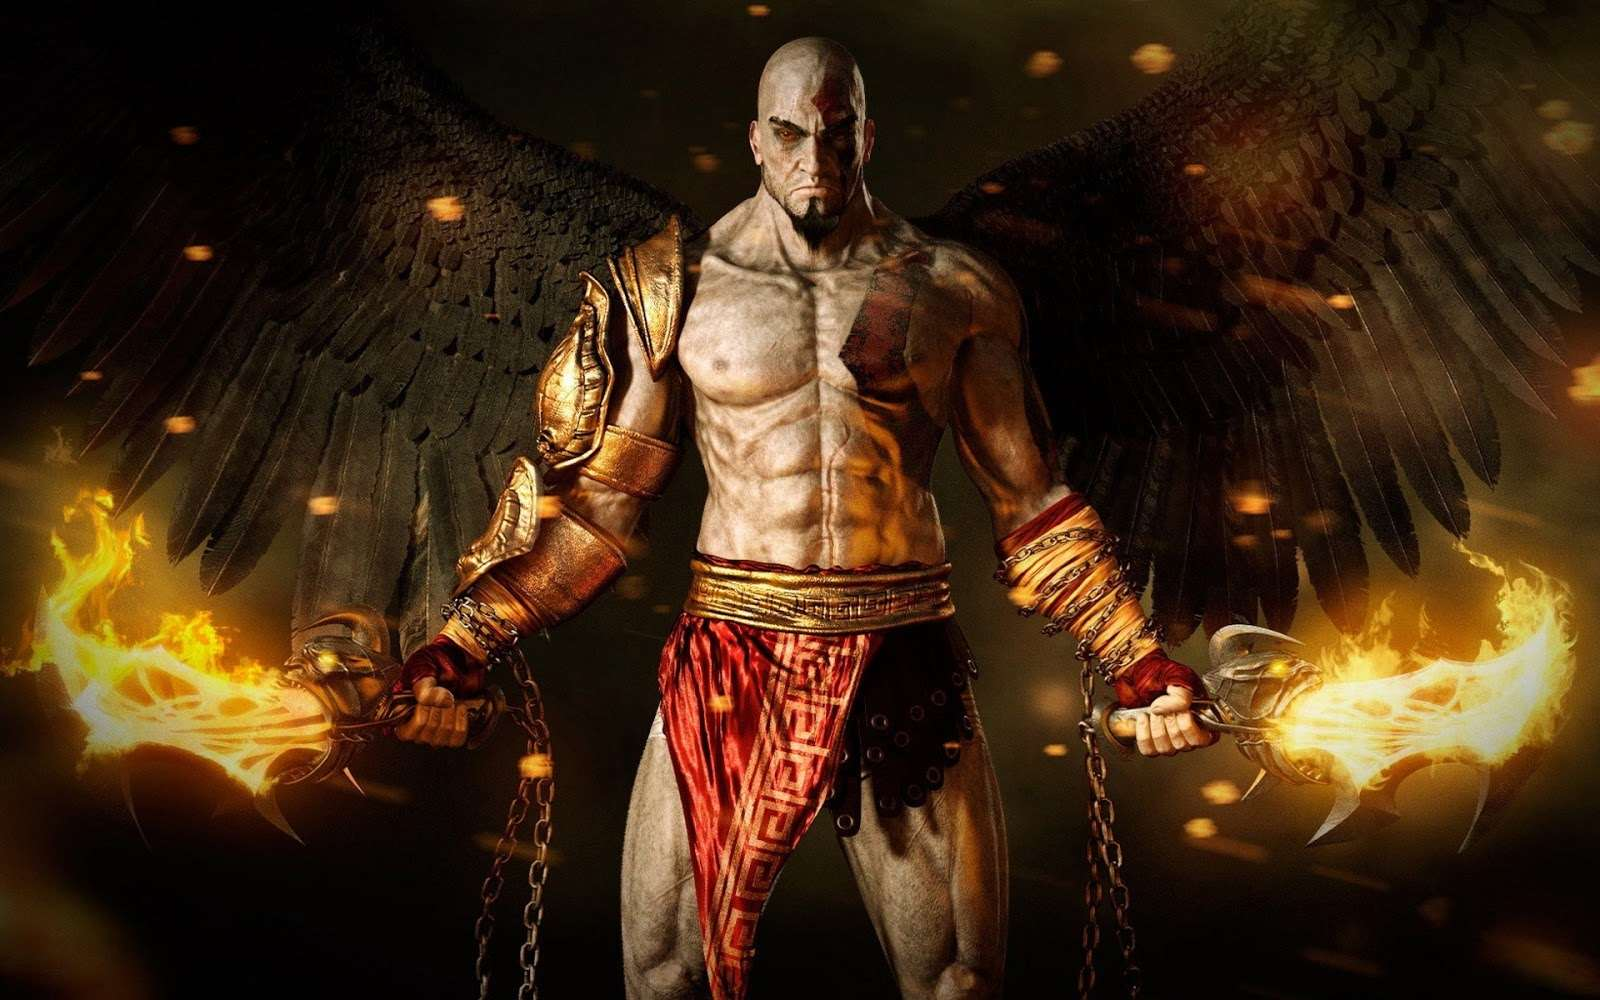 God of war ascension and god of war 3 look great on pc with this god of war ascension and god of war 3 look great on pc with this ps3 emulator pc gamer voltagebd